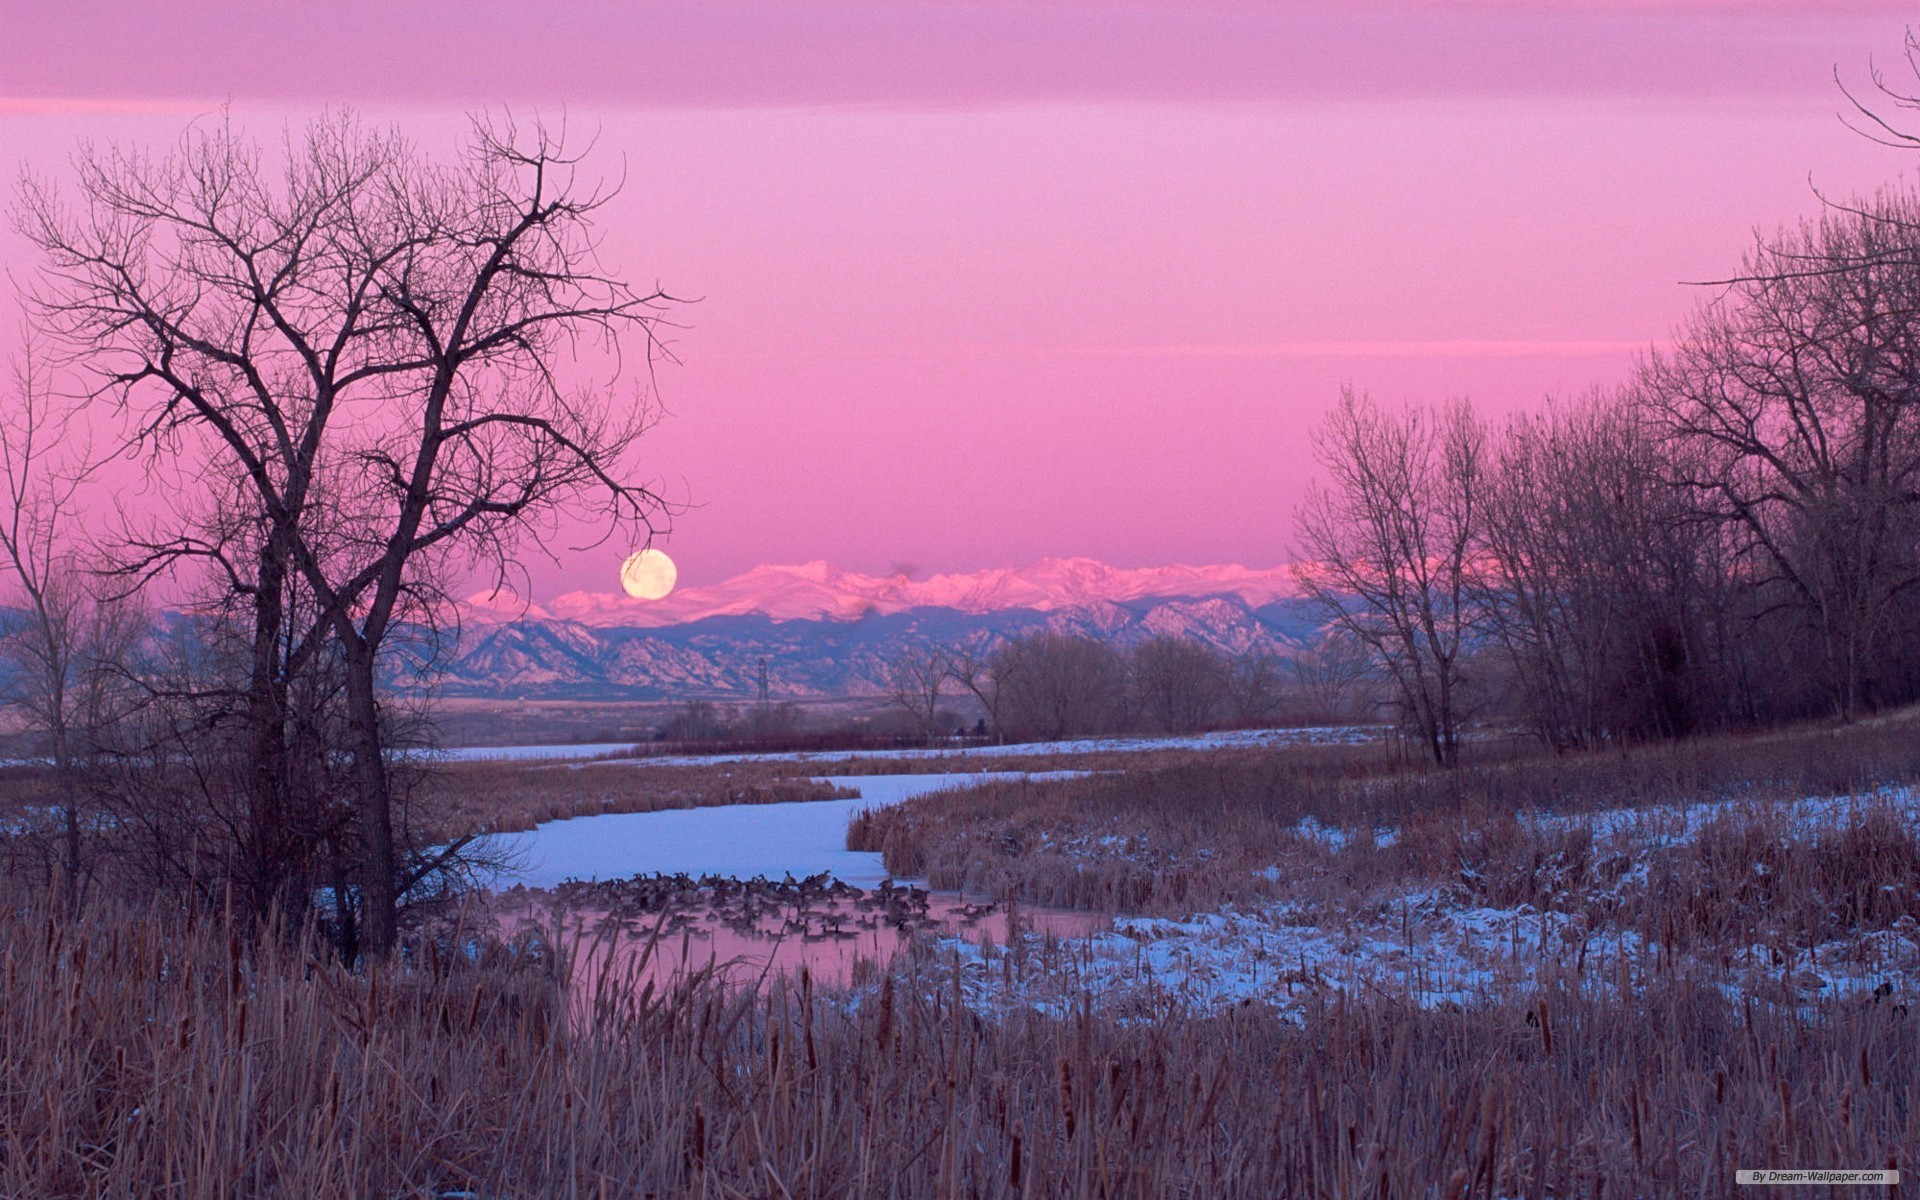 Desktop wallpapers 521 photos · curated by hamad shafqat. Free Nature Wallpaper - Aesthetic Pink Nature Background ...